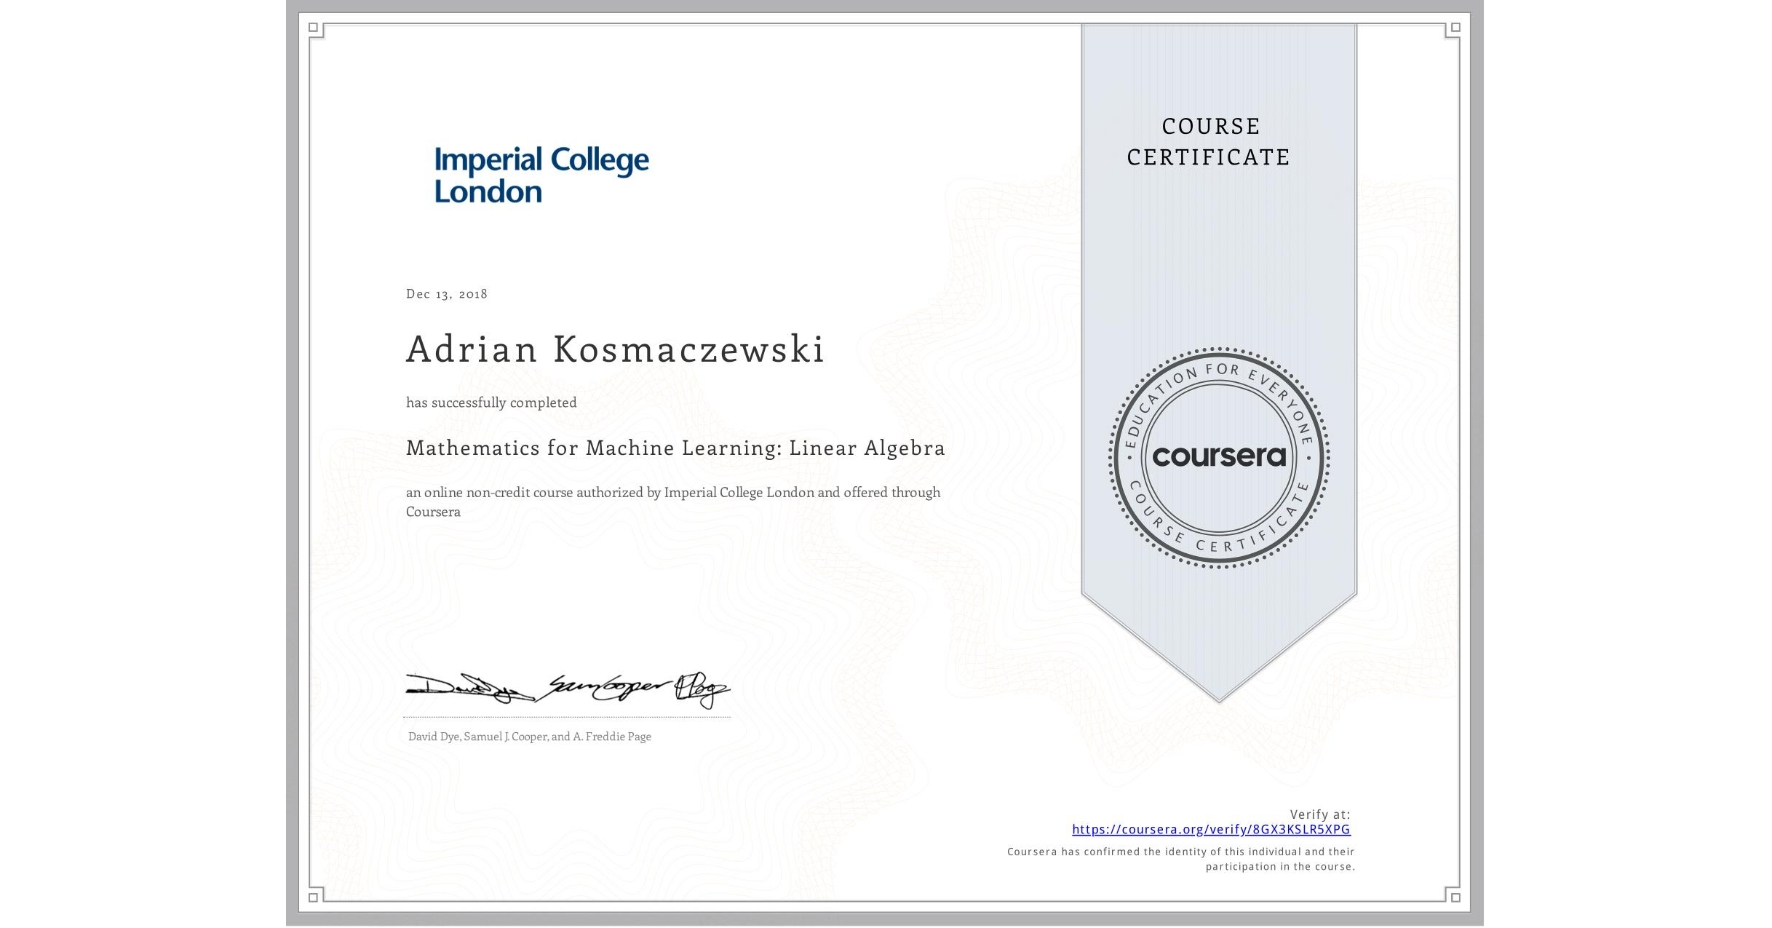 View certificate for Adrian Kosmaczewski, Mathematics for Machine Learning: Linear Algebra, an online non-credit course authorized by Imperial College London and offered through Coursera